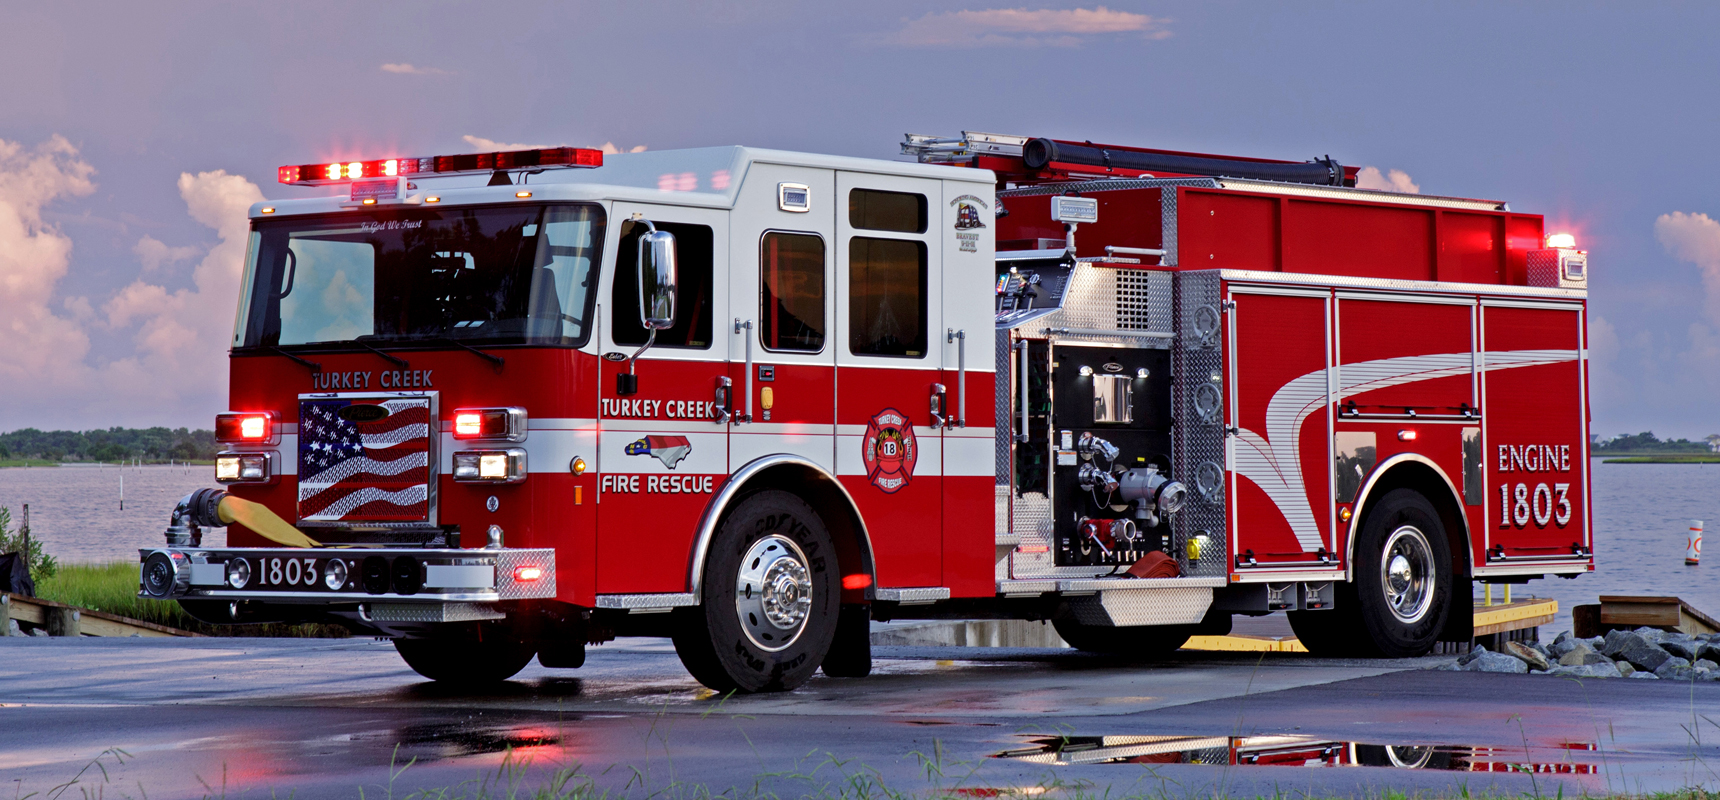 A Pierce Manufacturing Rescue Pumper from Turkey Creek shown with the storage doors open and emergency lighting displayed at dusk